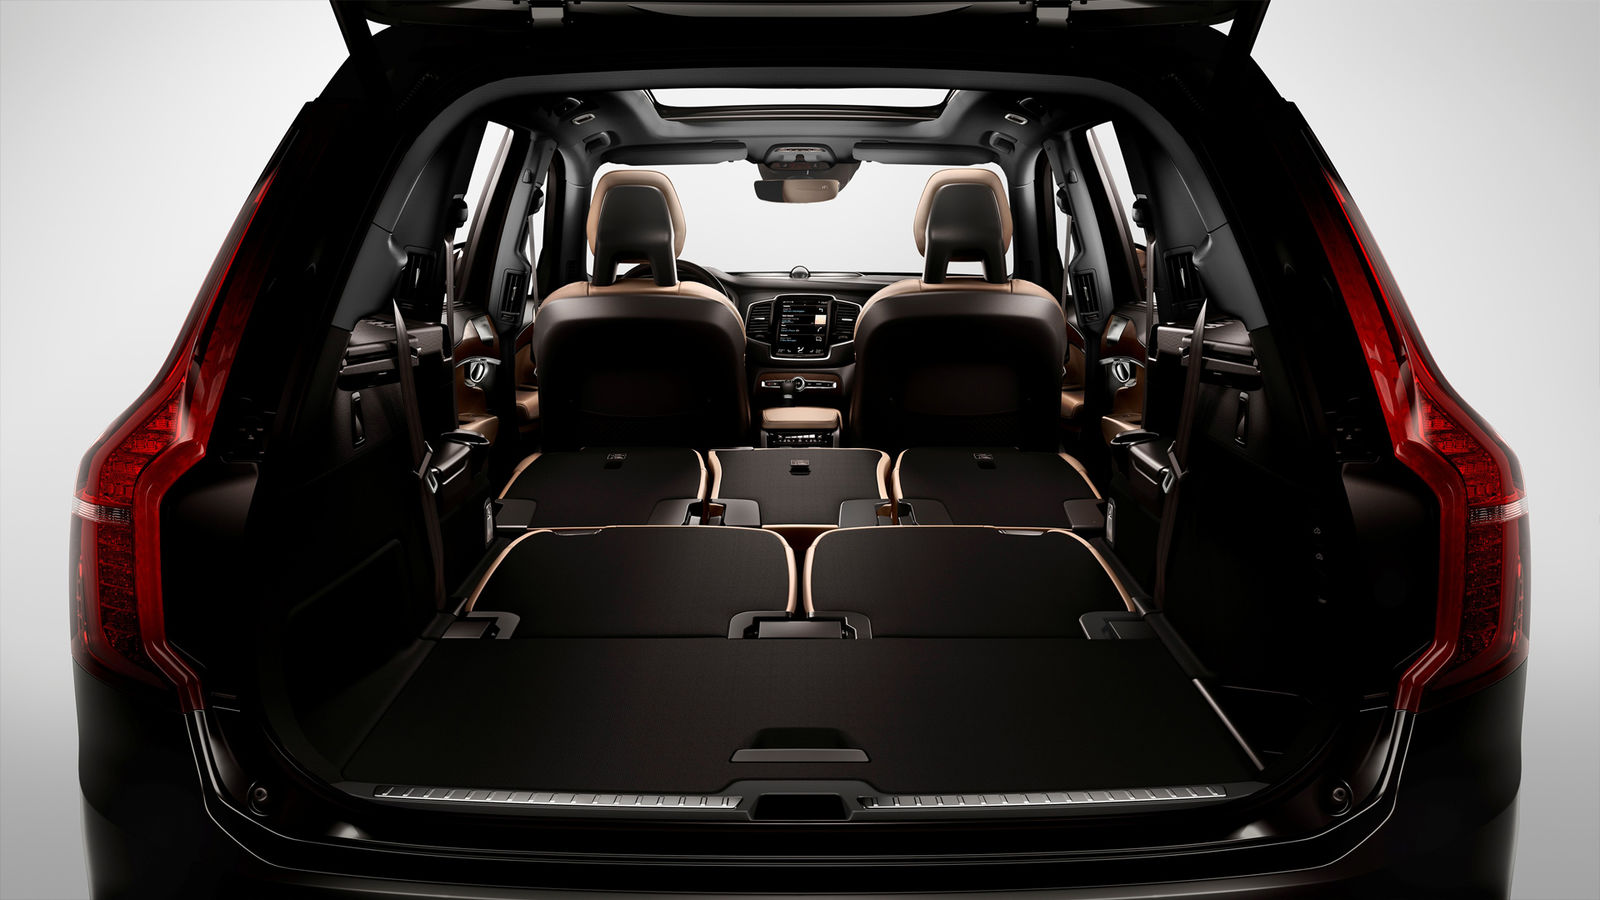 Image gallery 2016 xc90 dimensions for New model boot